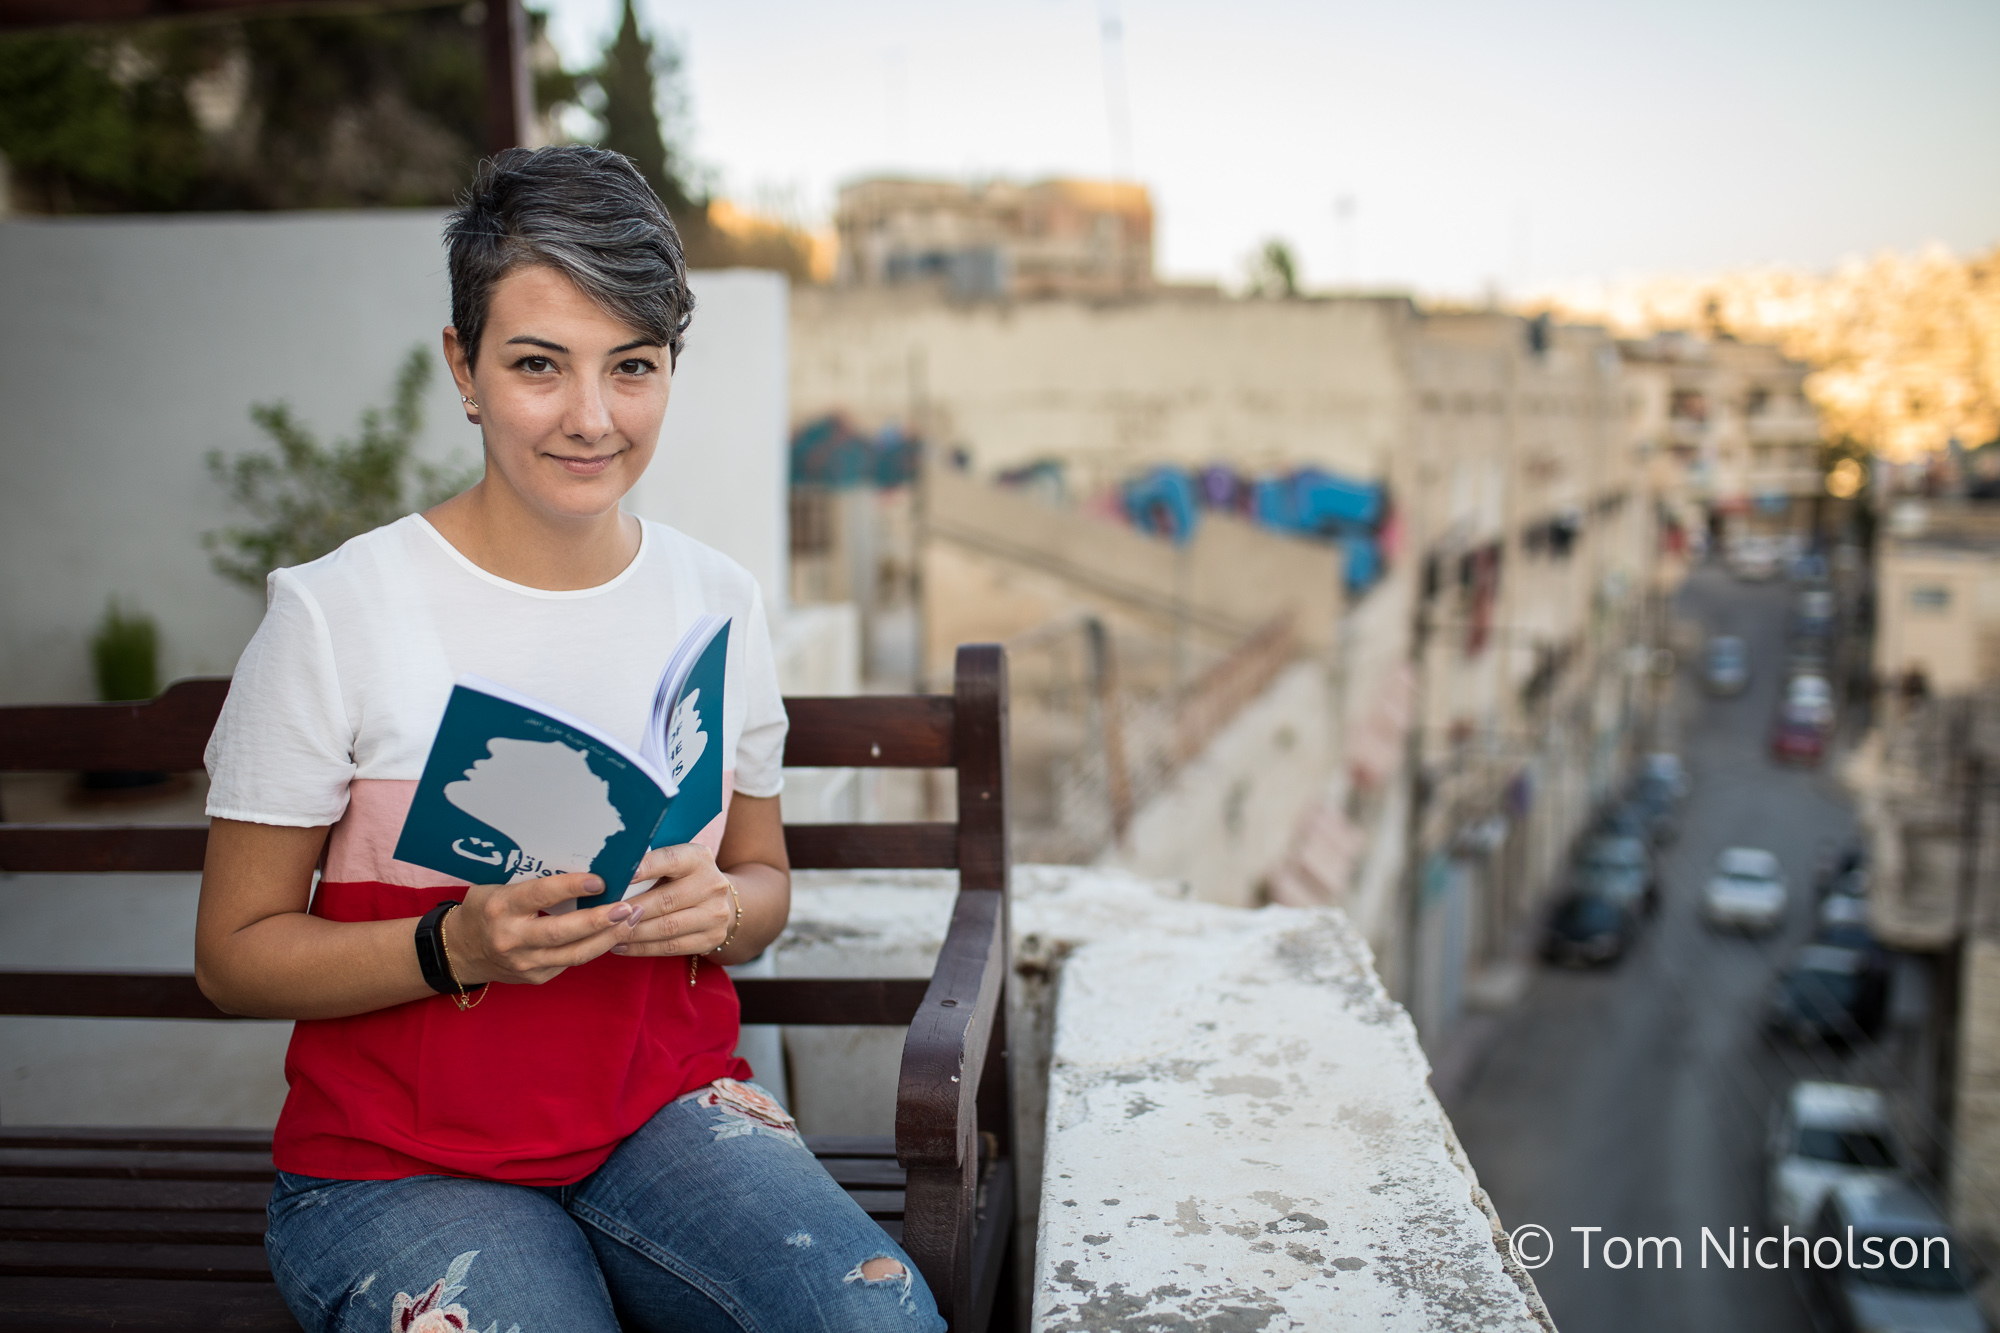 ©2018 Tom Nicholson. 25/06/2018. Amman, Jordan. Milia Eidmouni, from Homs, Syria is the founder of the Syrian Female Journalists Network, a non-profit organisation launched in 2013. The organisation empowers Syrian female journalists, creates campaigns, trains students in journalism and raises awareness of gender inequality and women's issues.